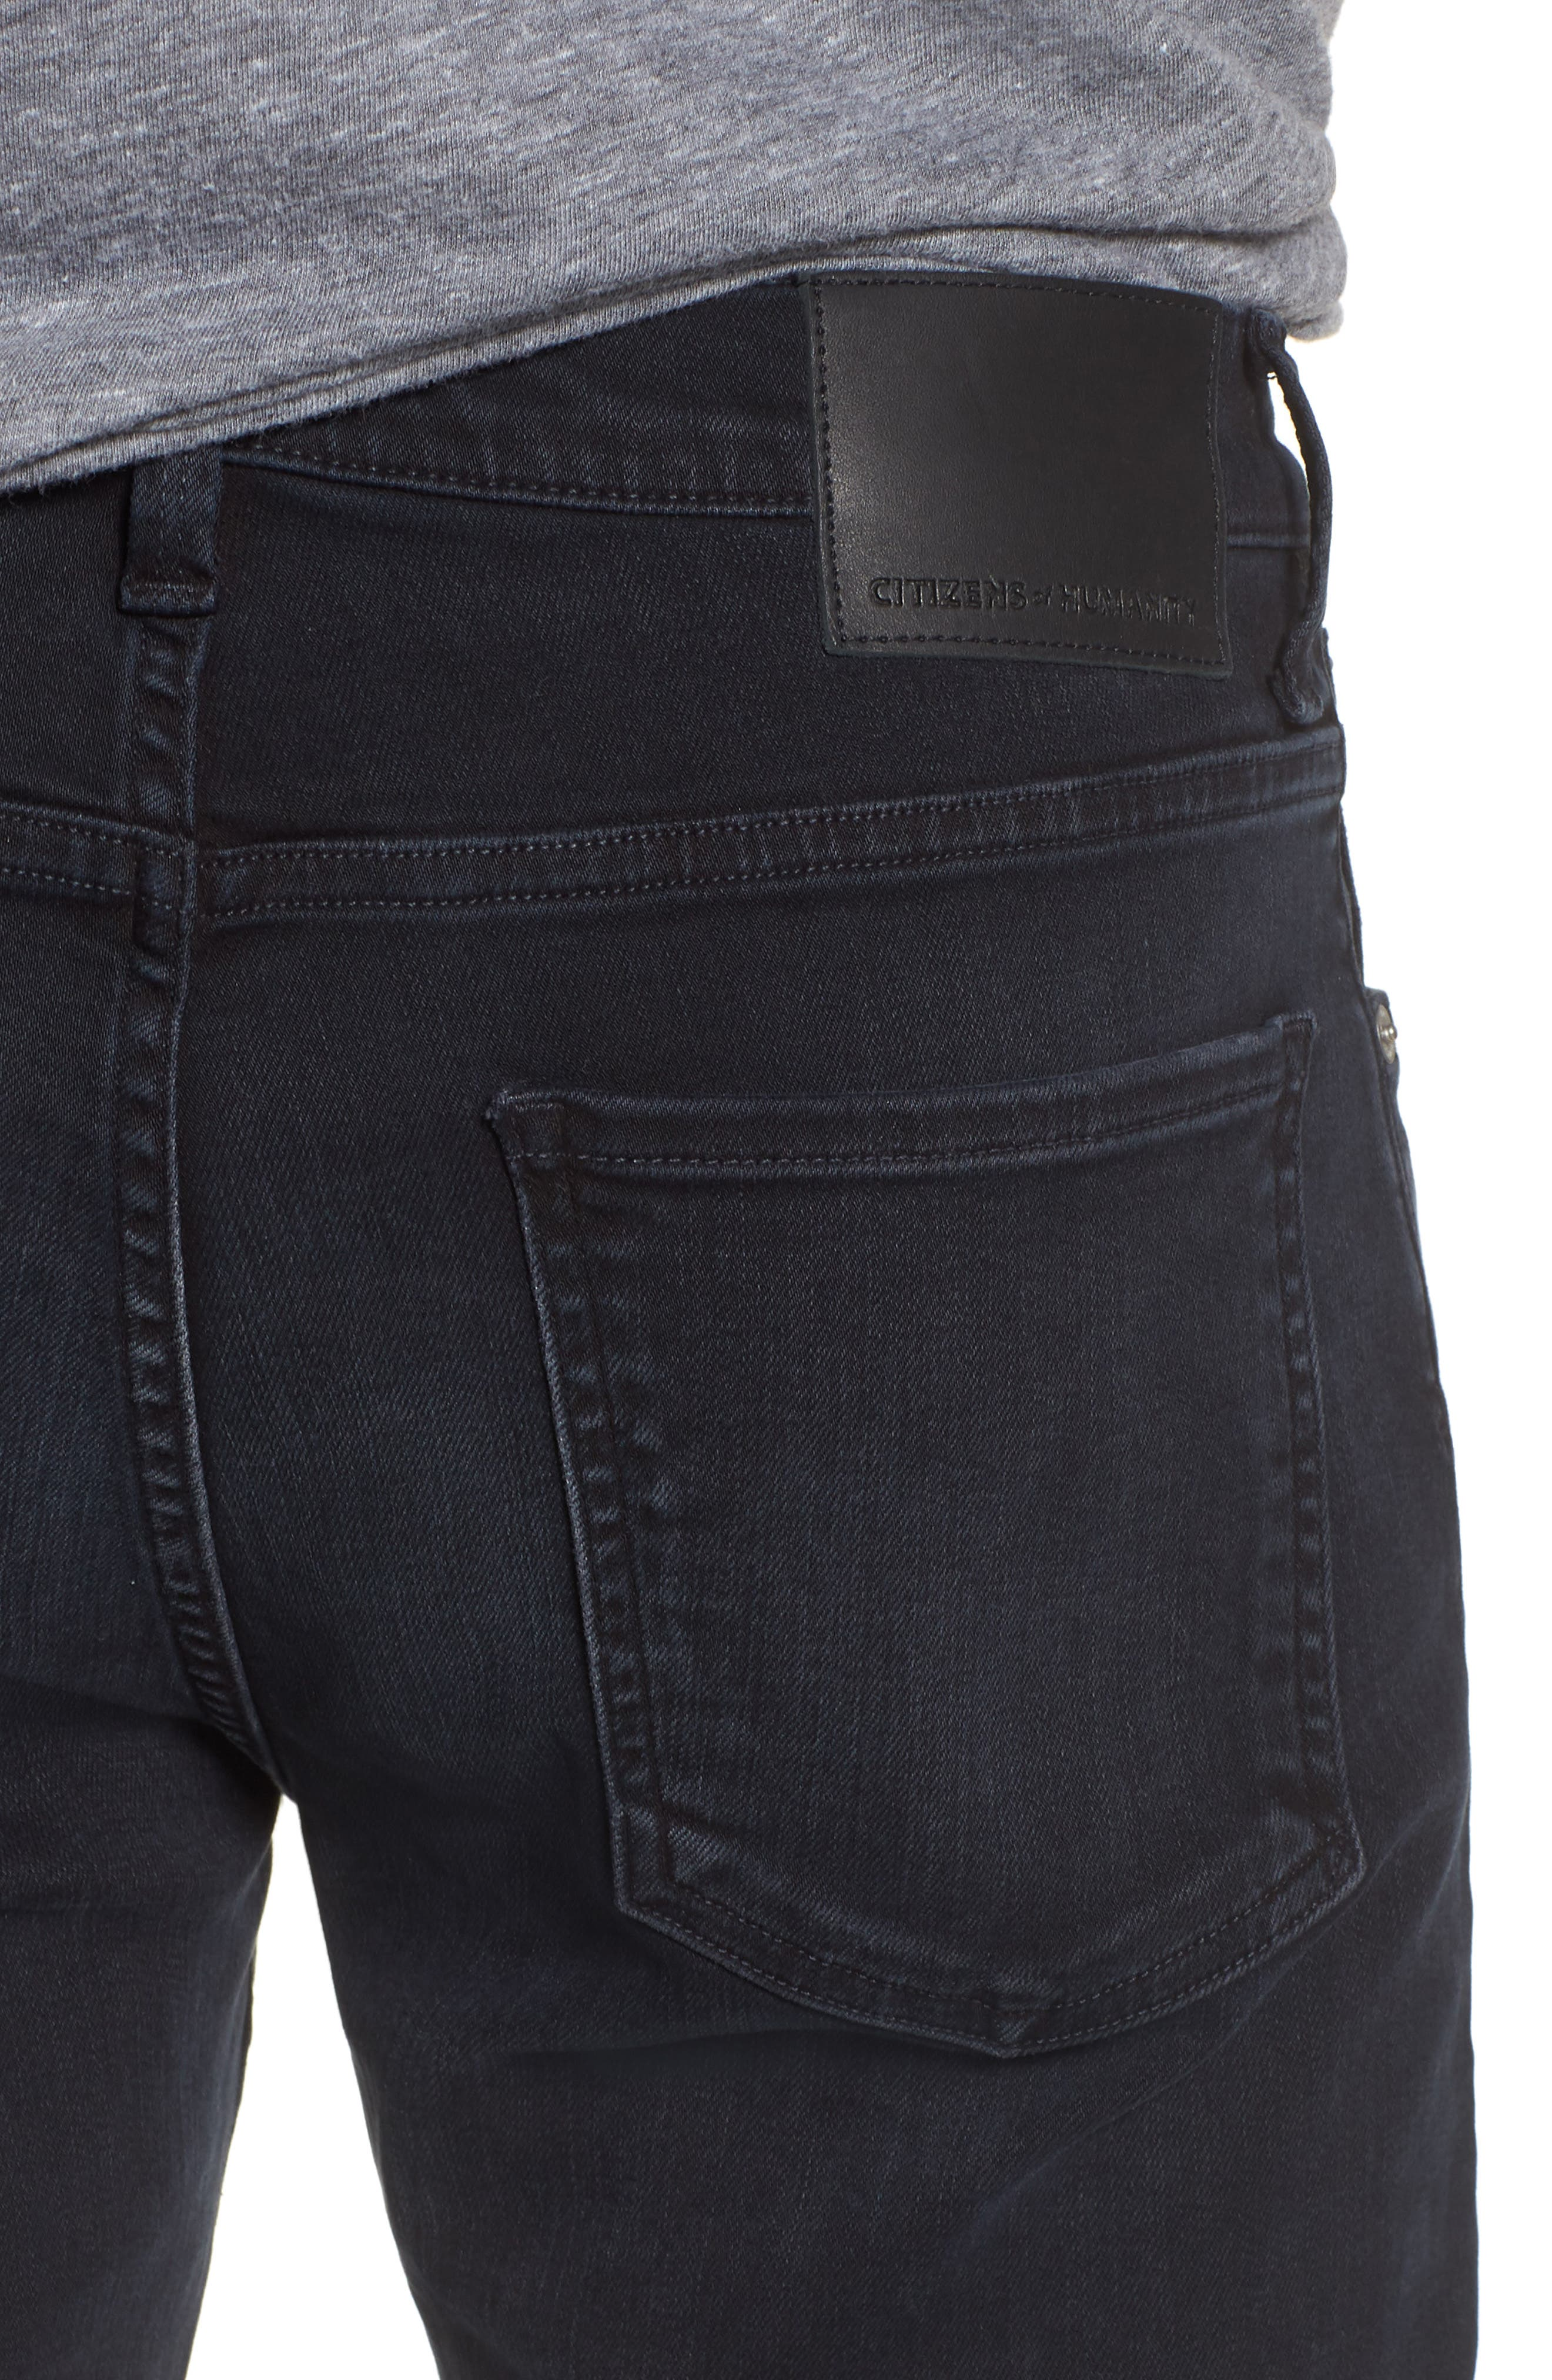 Bowery Slim Fit Jeans,                             Alternate thumbnail 4, color,                             Ink